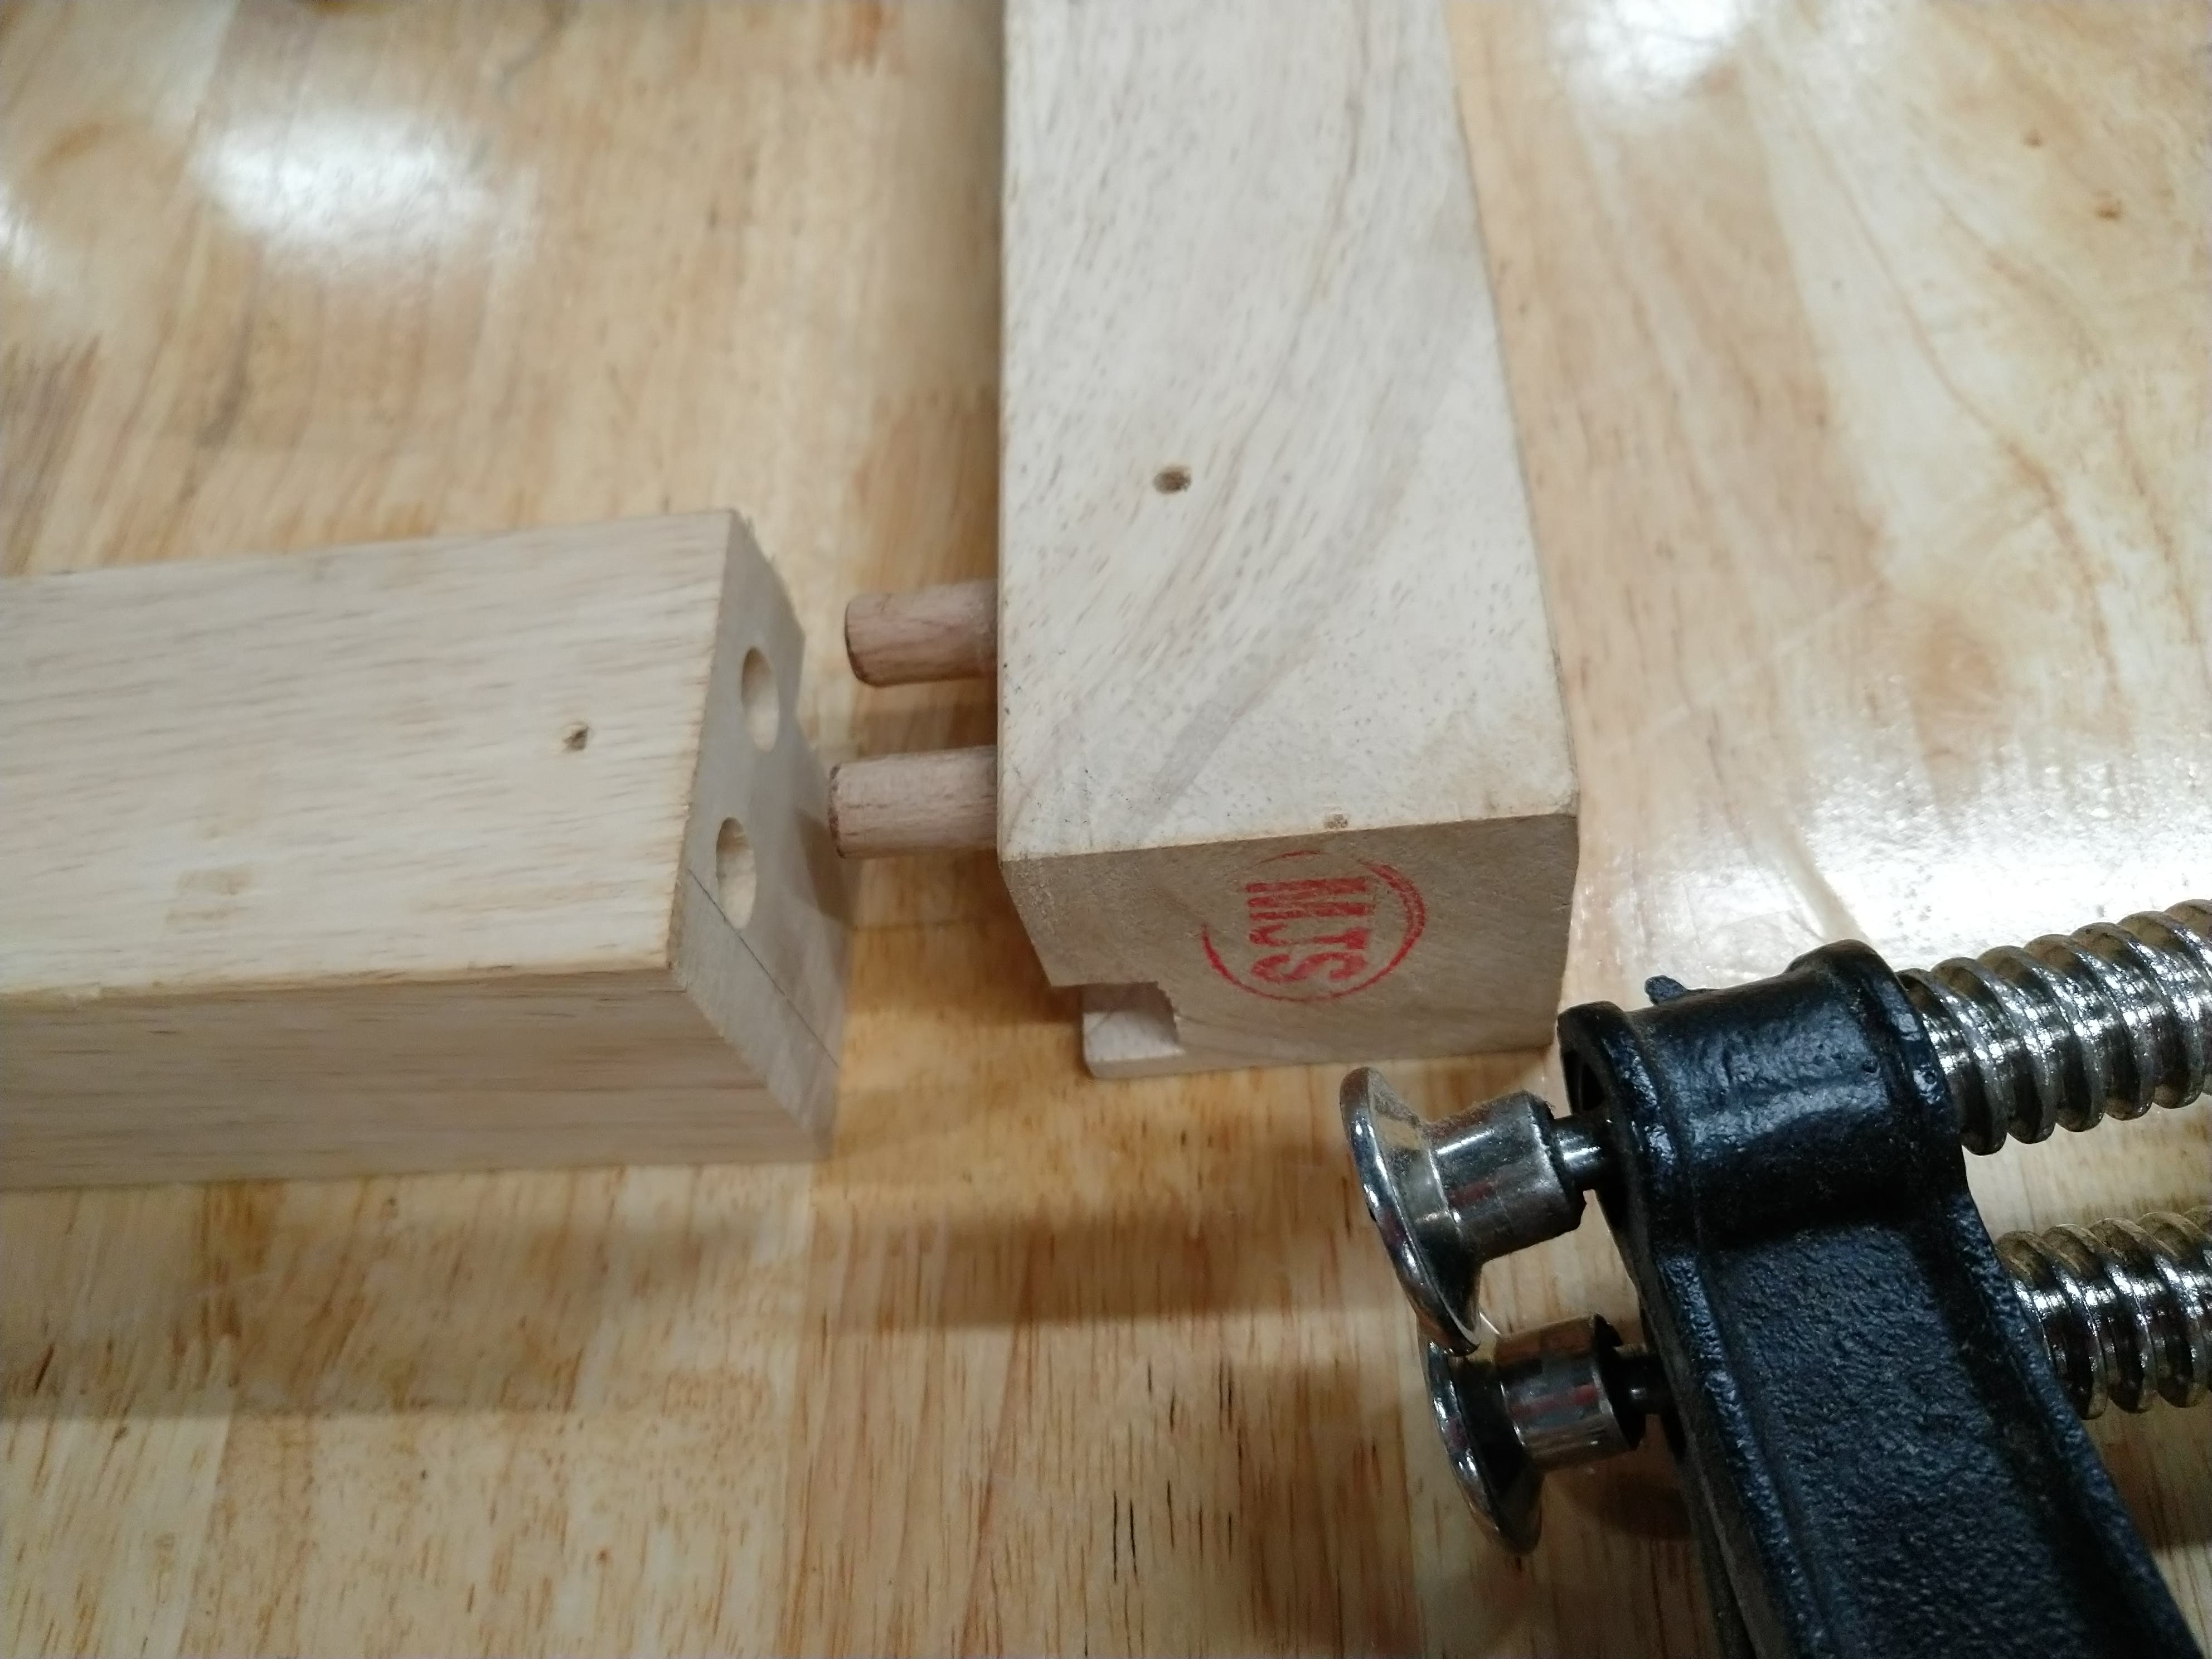 Dowels to help hold it together. We wanted it to come apart somewhat easily as well.